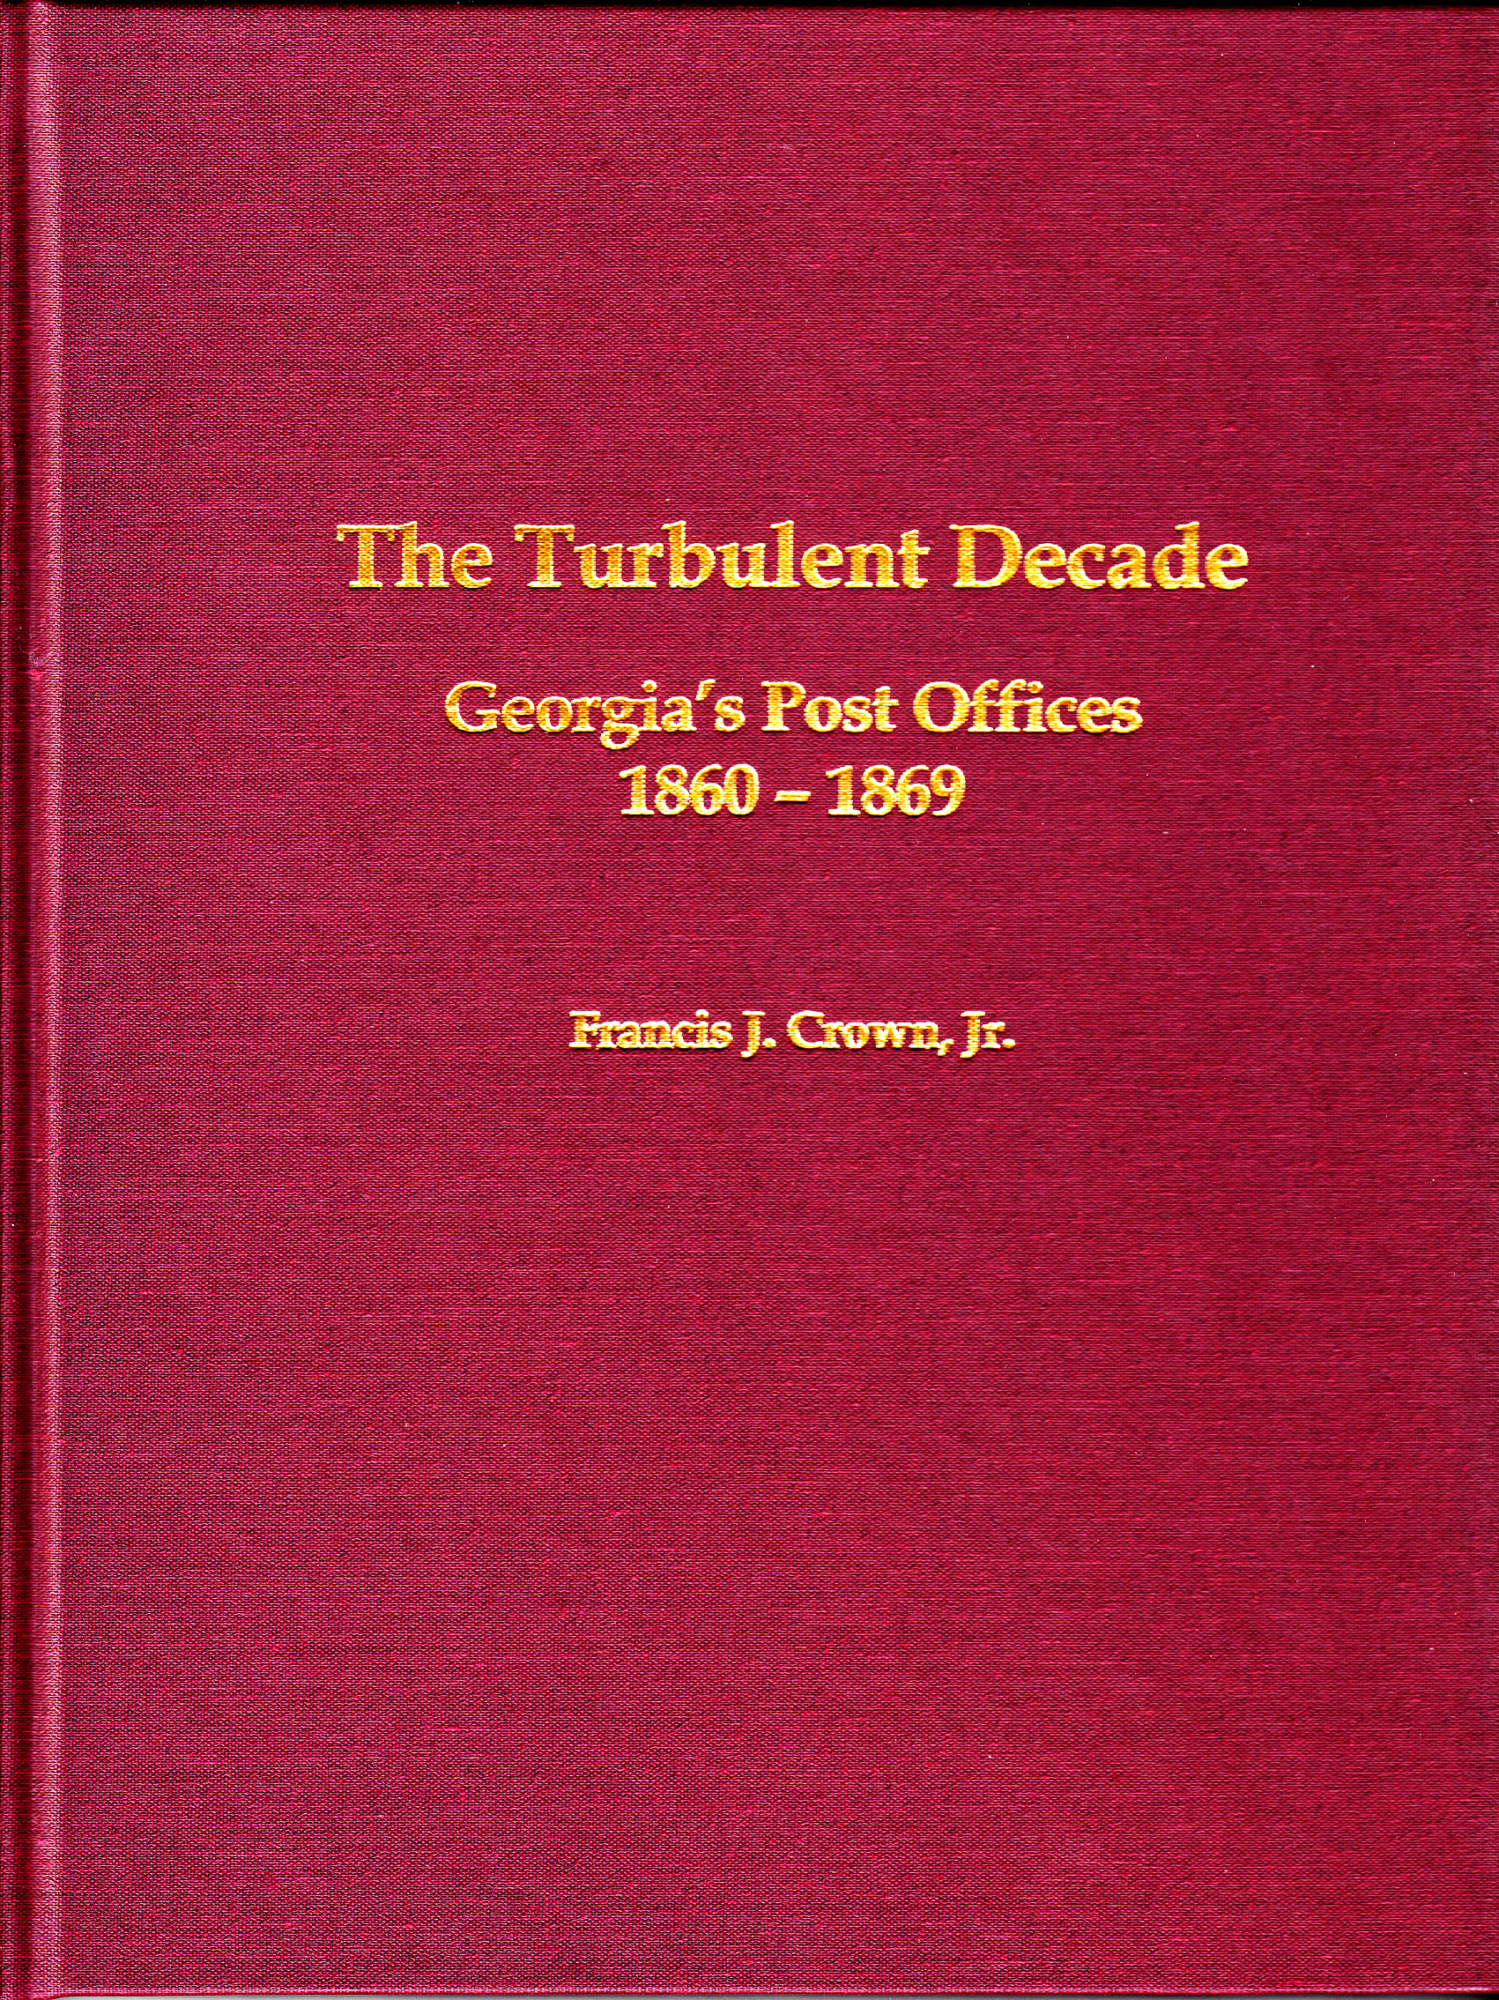 The Turbulent Decade; Georgia's Post Offices 1860-1869